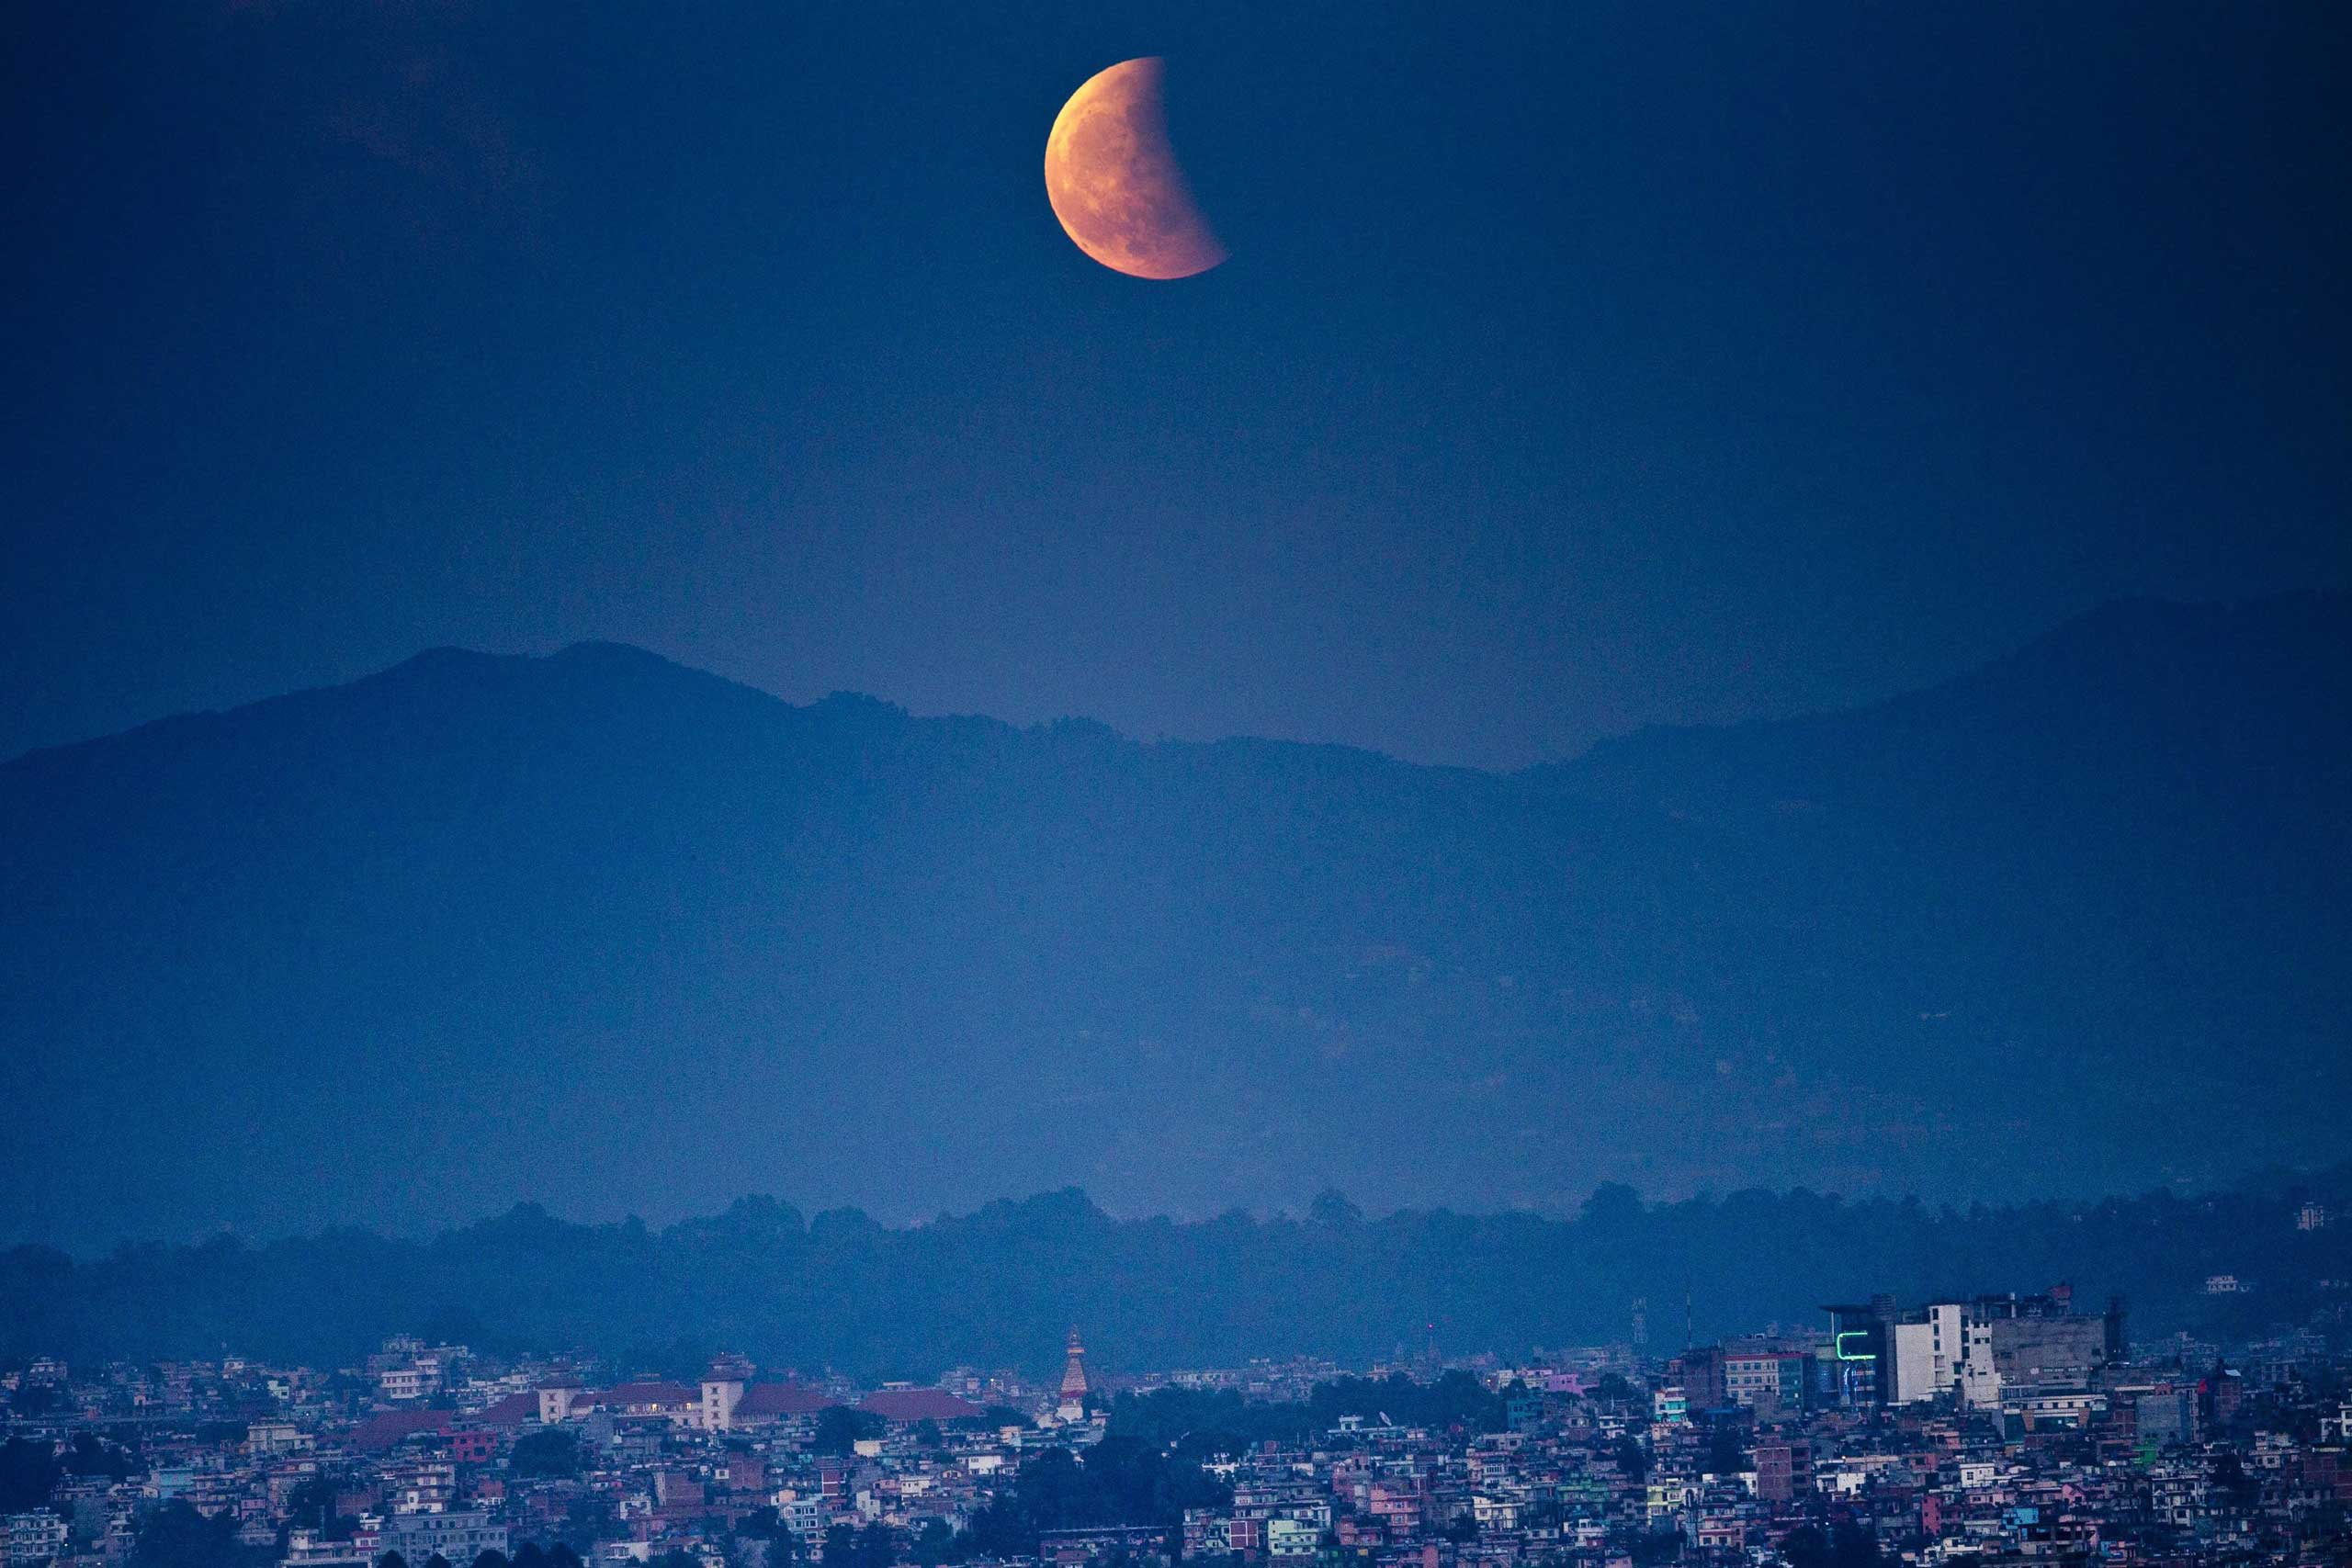 The moon is seen glowing red as it rises in Kathmandu, Nepal during a total lunar eclipse.